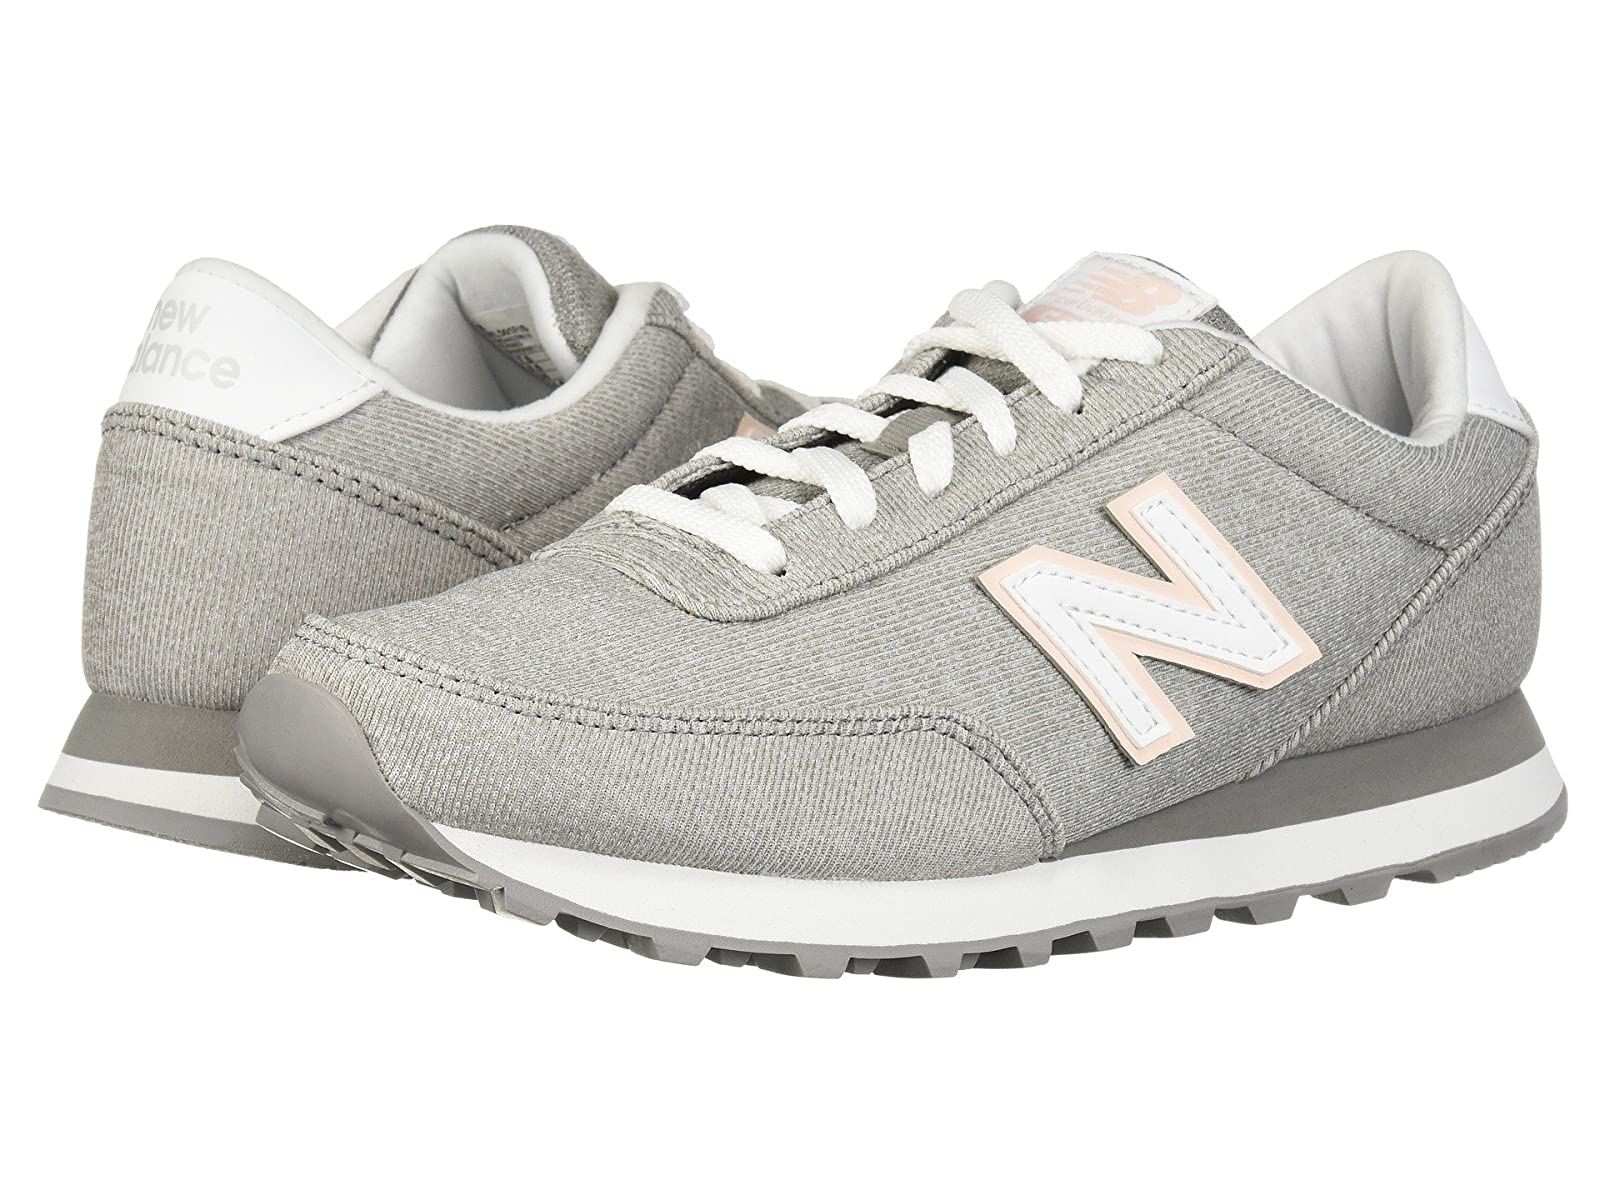 New Balance WL501v1Cheap and distinctive eye-catching shoes